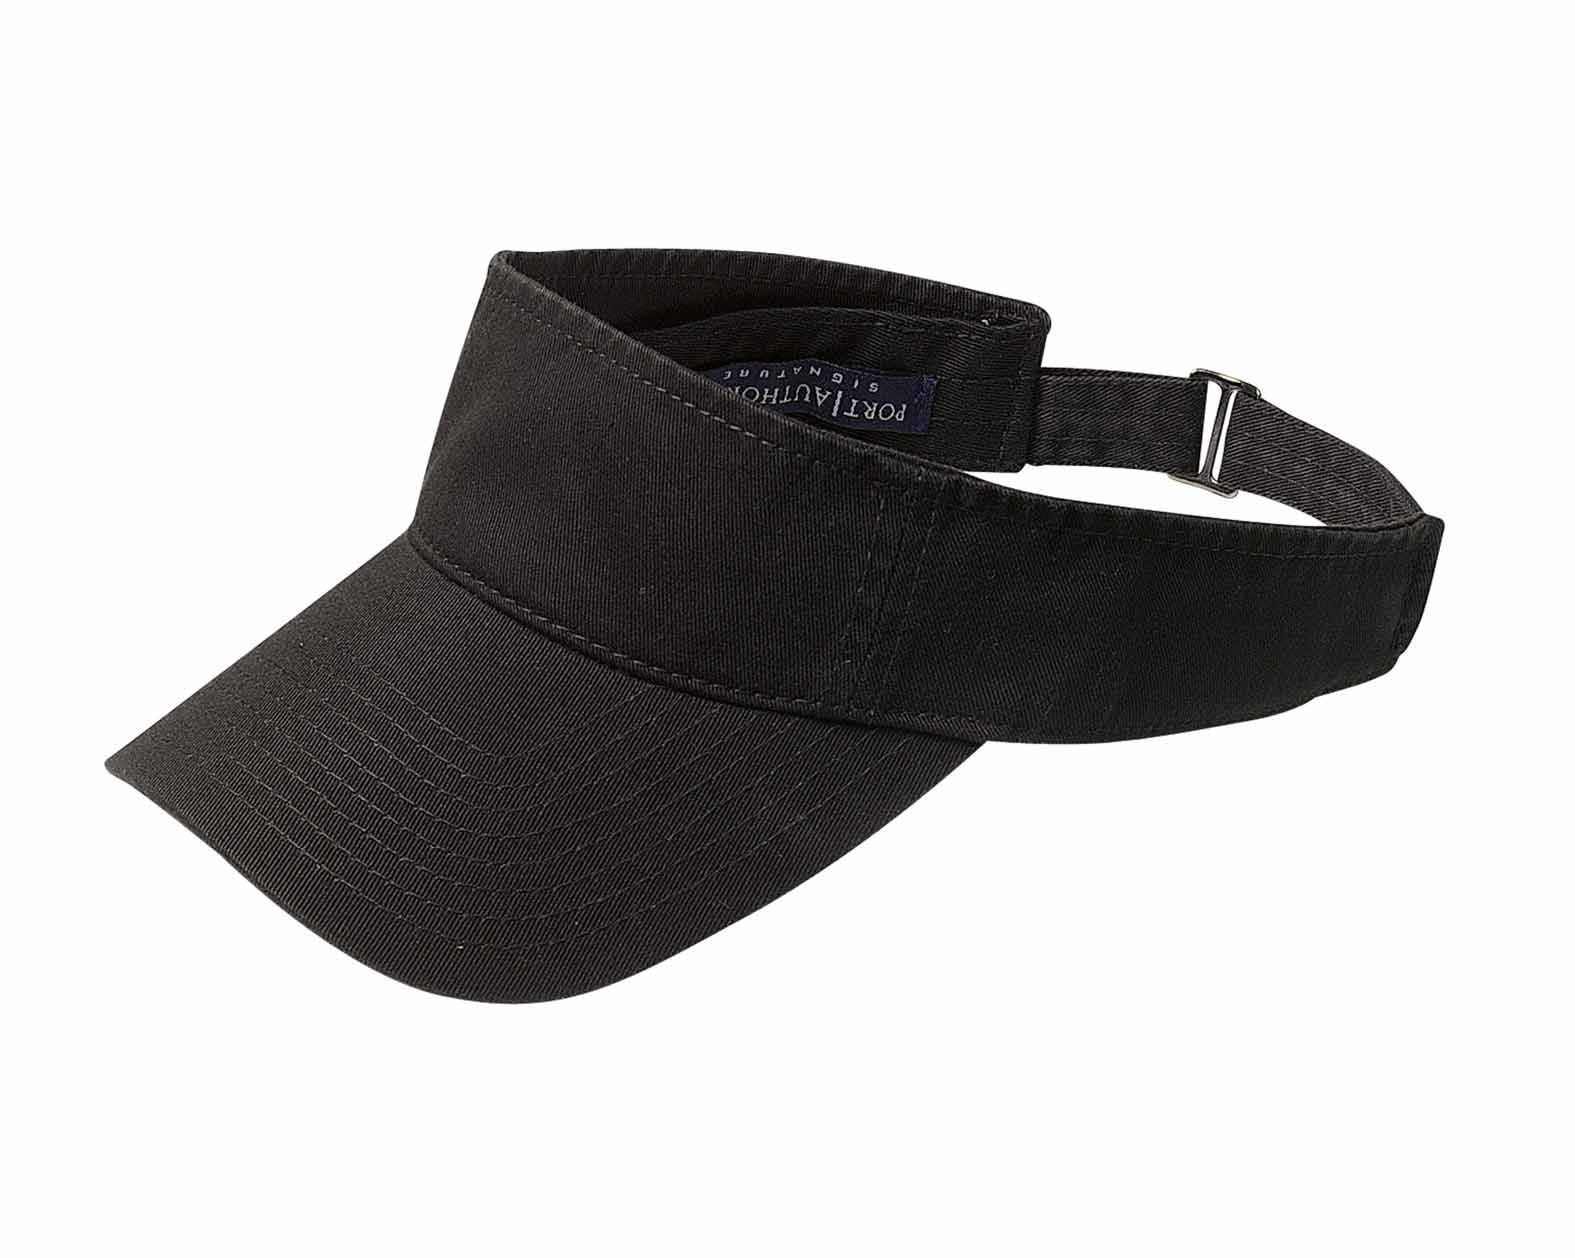 Fashion Visor with Adjustable Hook and Loop Back